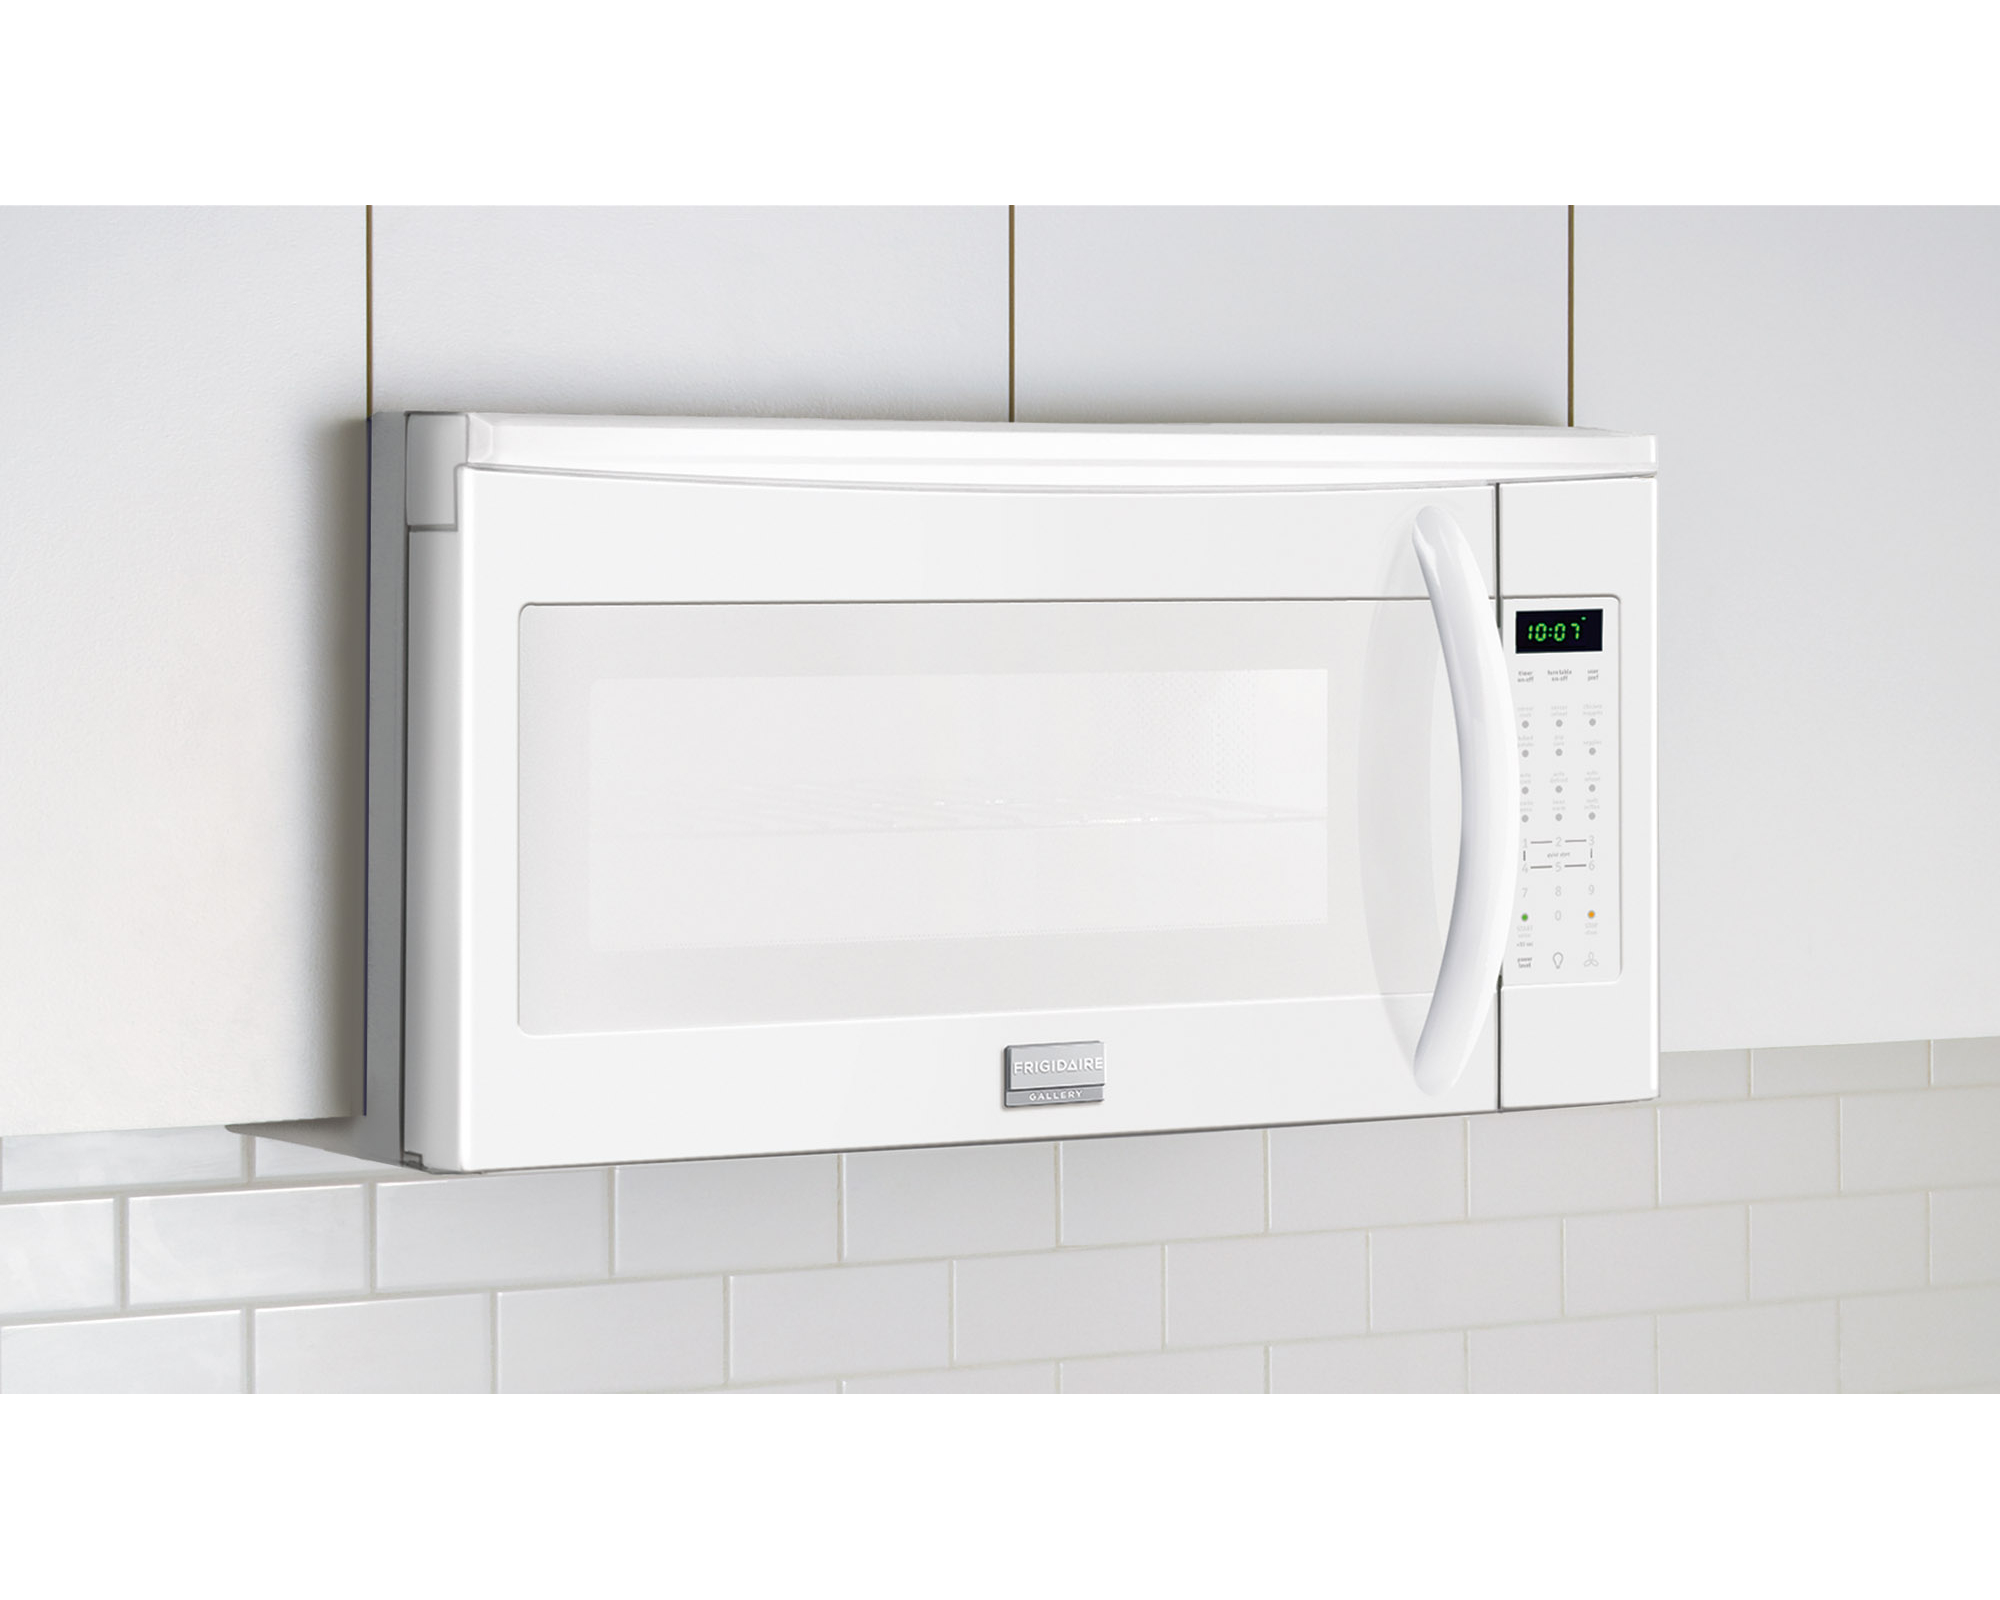 Frigidaire Gallery 2.0 cu. ft. Over-the-Range Microwave - White